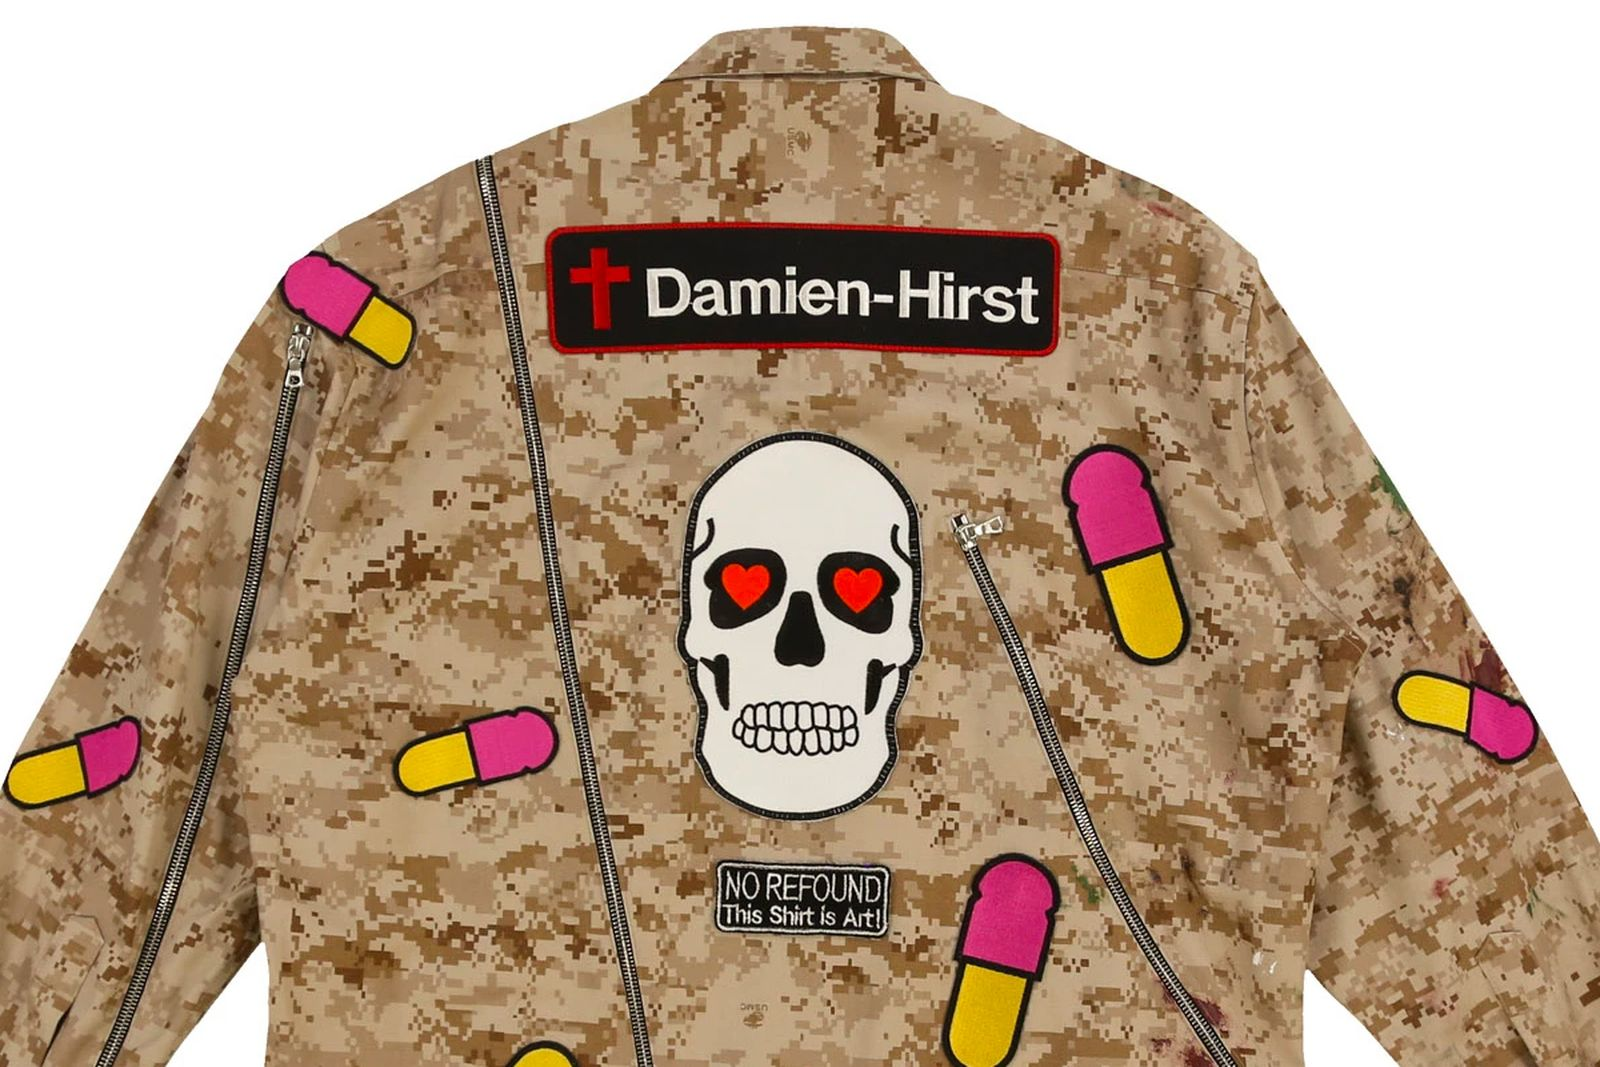 damien-hirst-tetsuzo-okubo-collection-virgil-ablohs-main